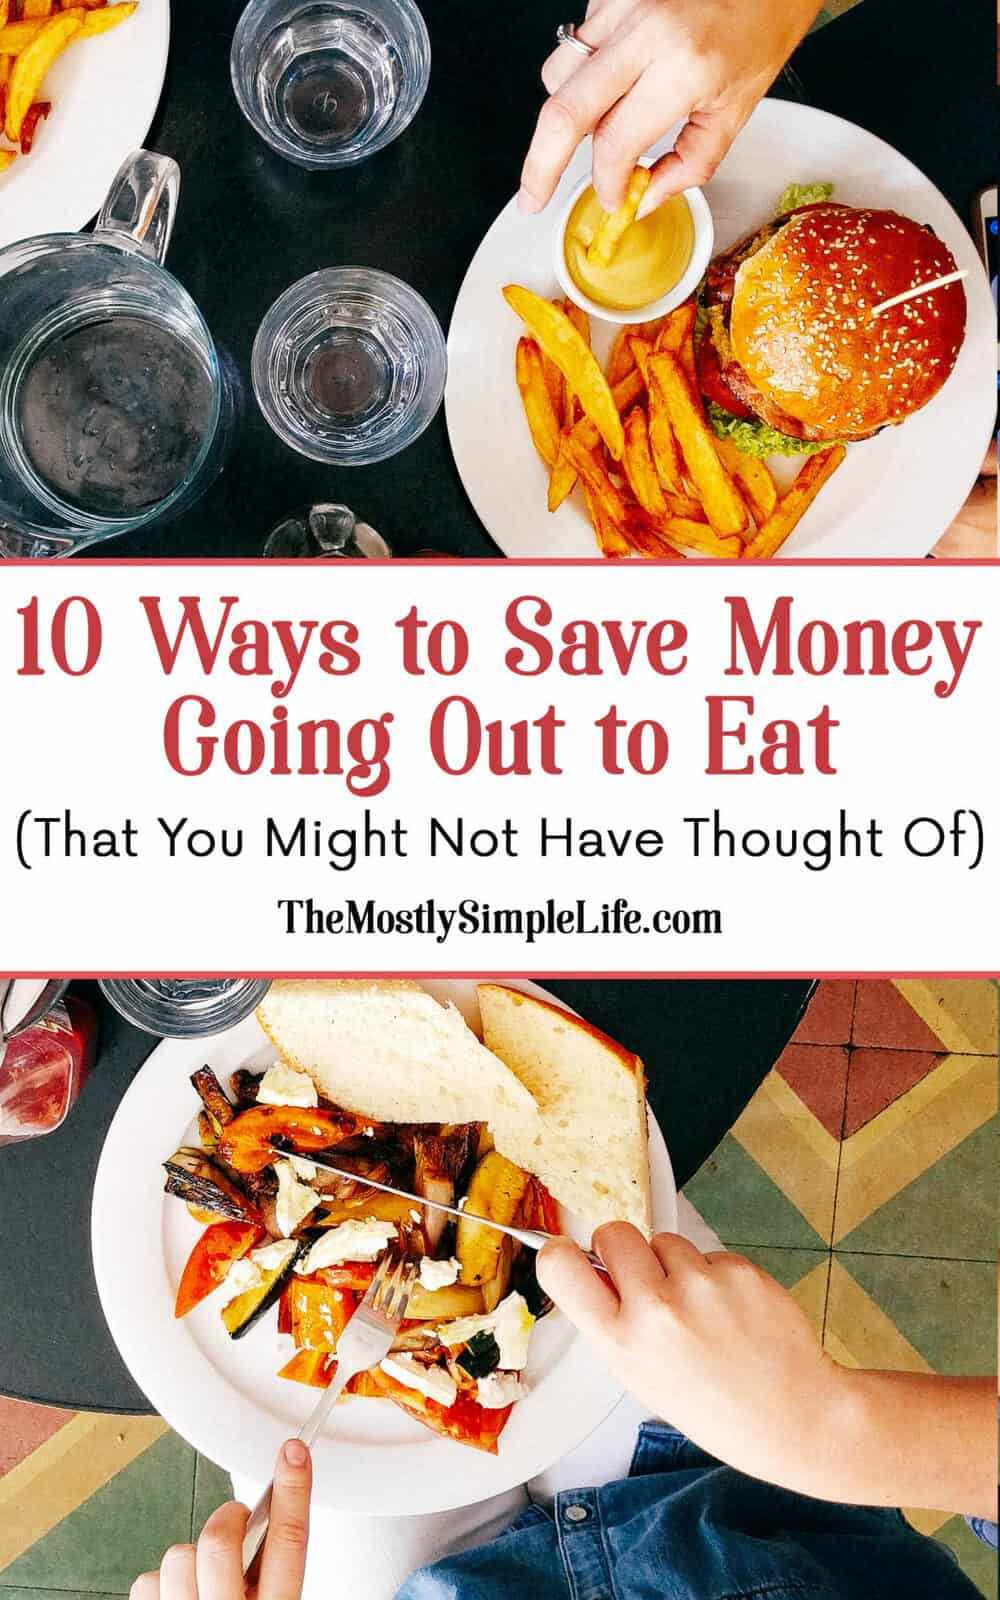 10 Ways to Save Money Going Out to Eat